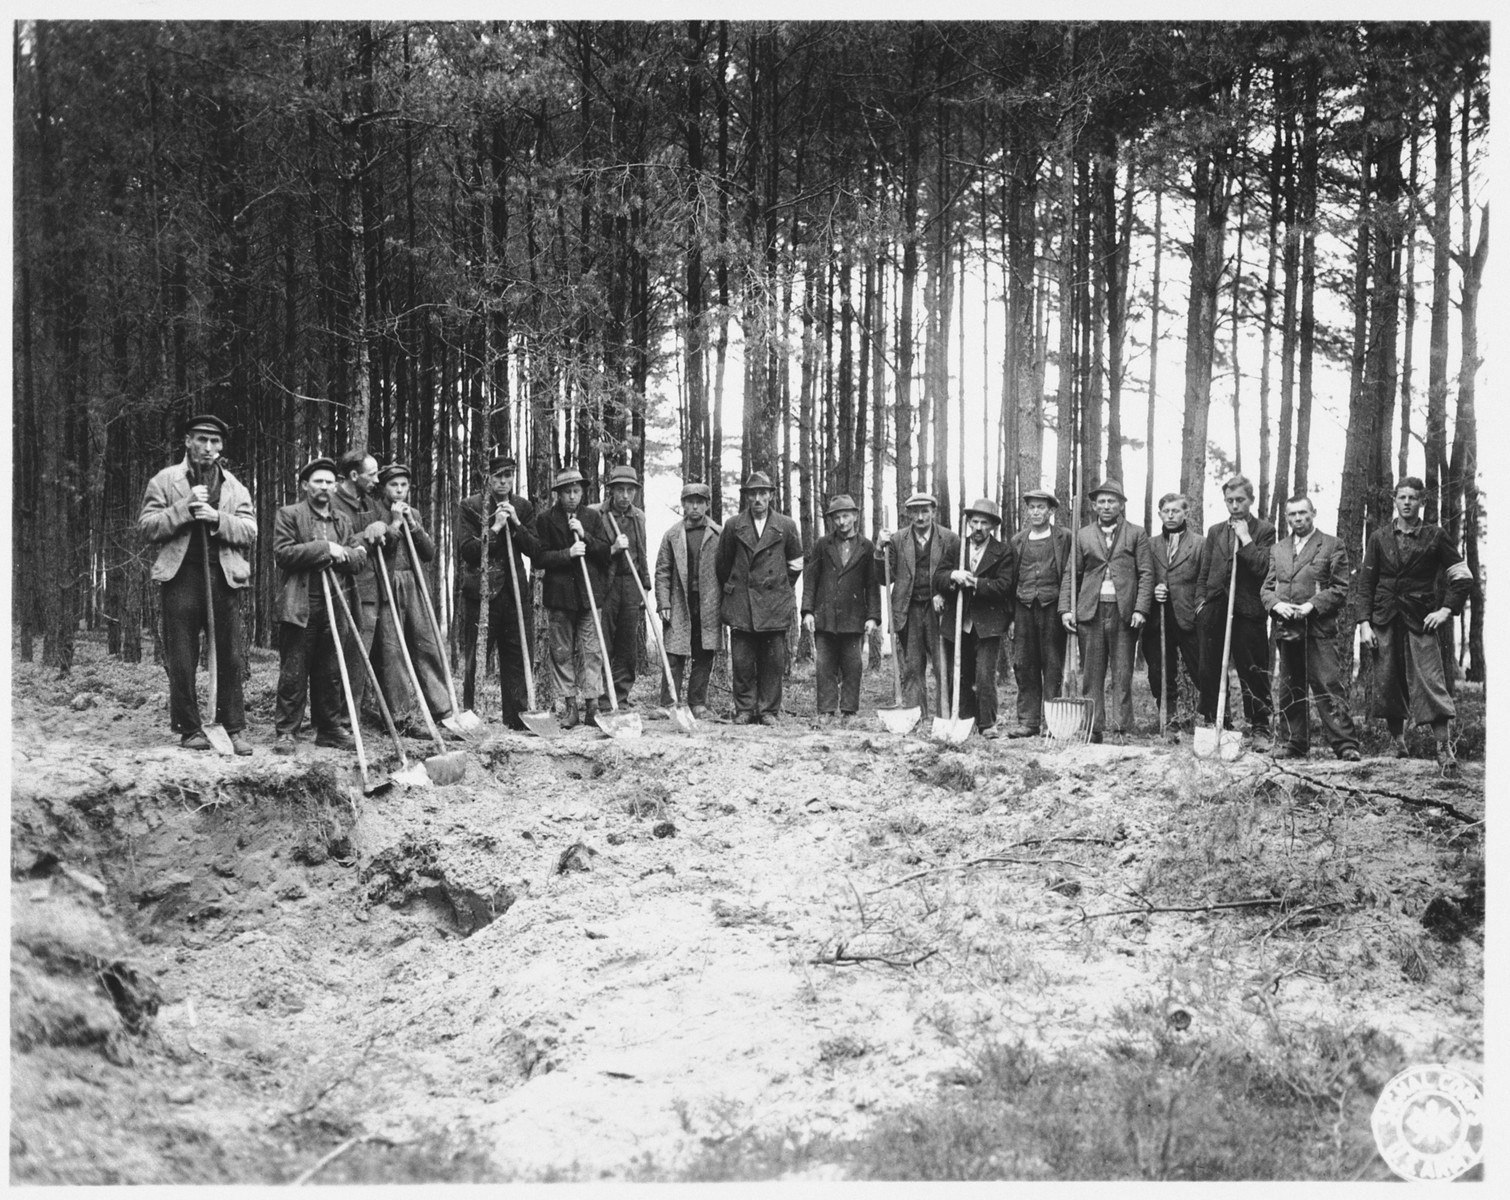 A group of German civilians stand with their shovels along the edge of a mass grave in Stamsried, Germany, which they have been charged with exhuming.  (Photograph taken by the 166th Signal Corps Company.)